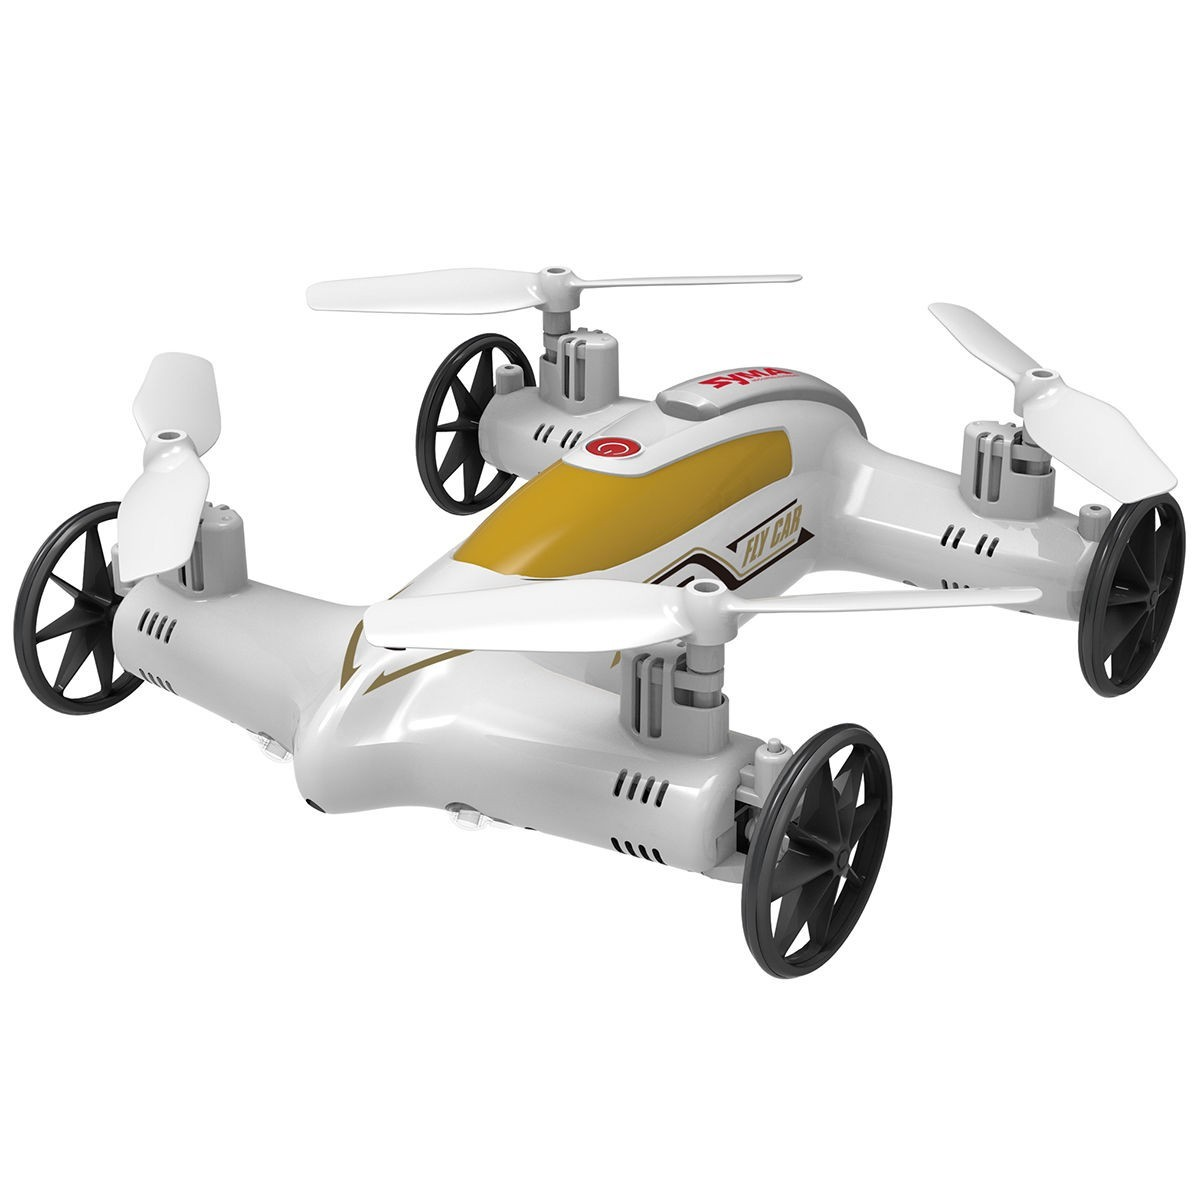 Syma X9S 2.4G 4CH 6-Axis RC Flying Car Remote Control Quadcopter - White